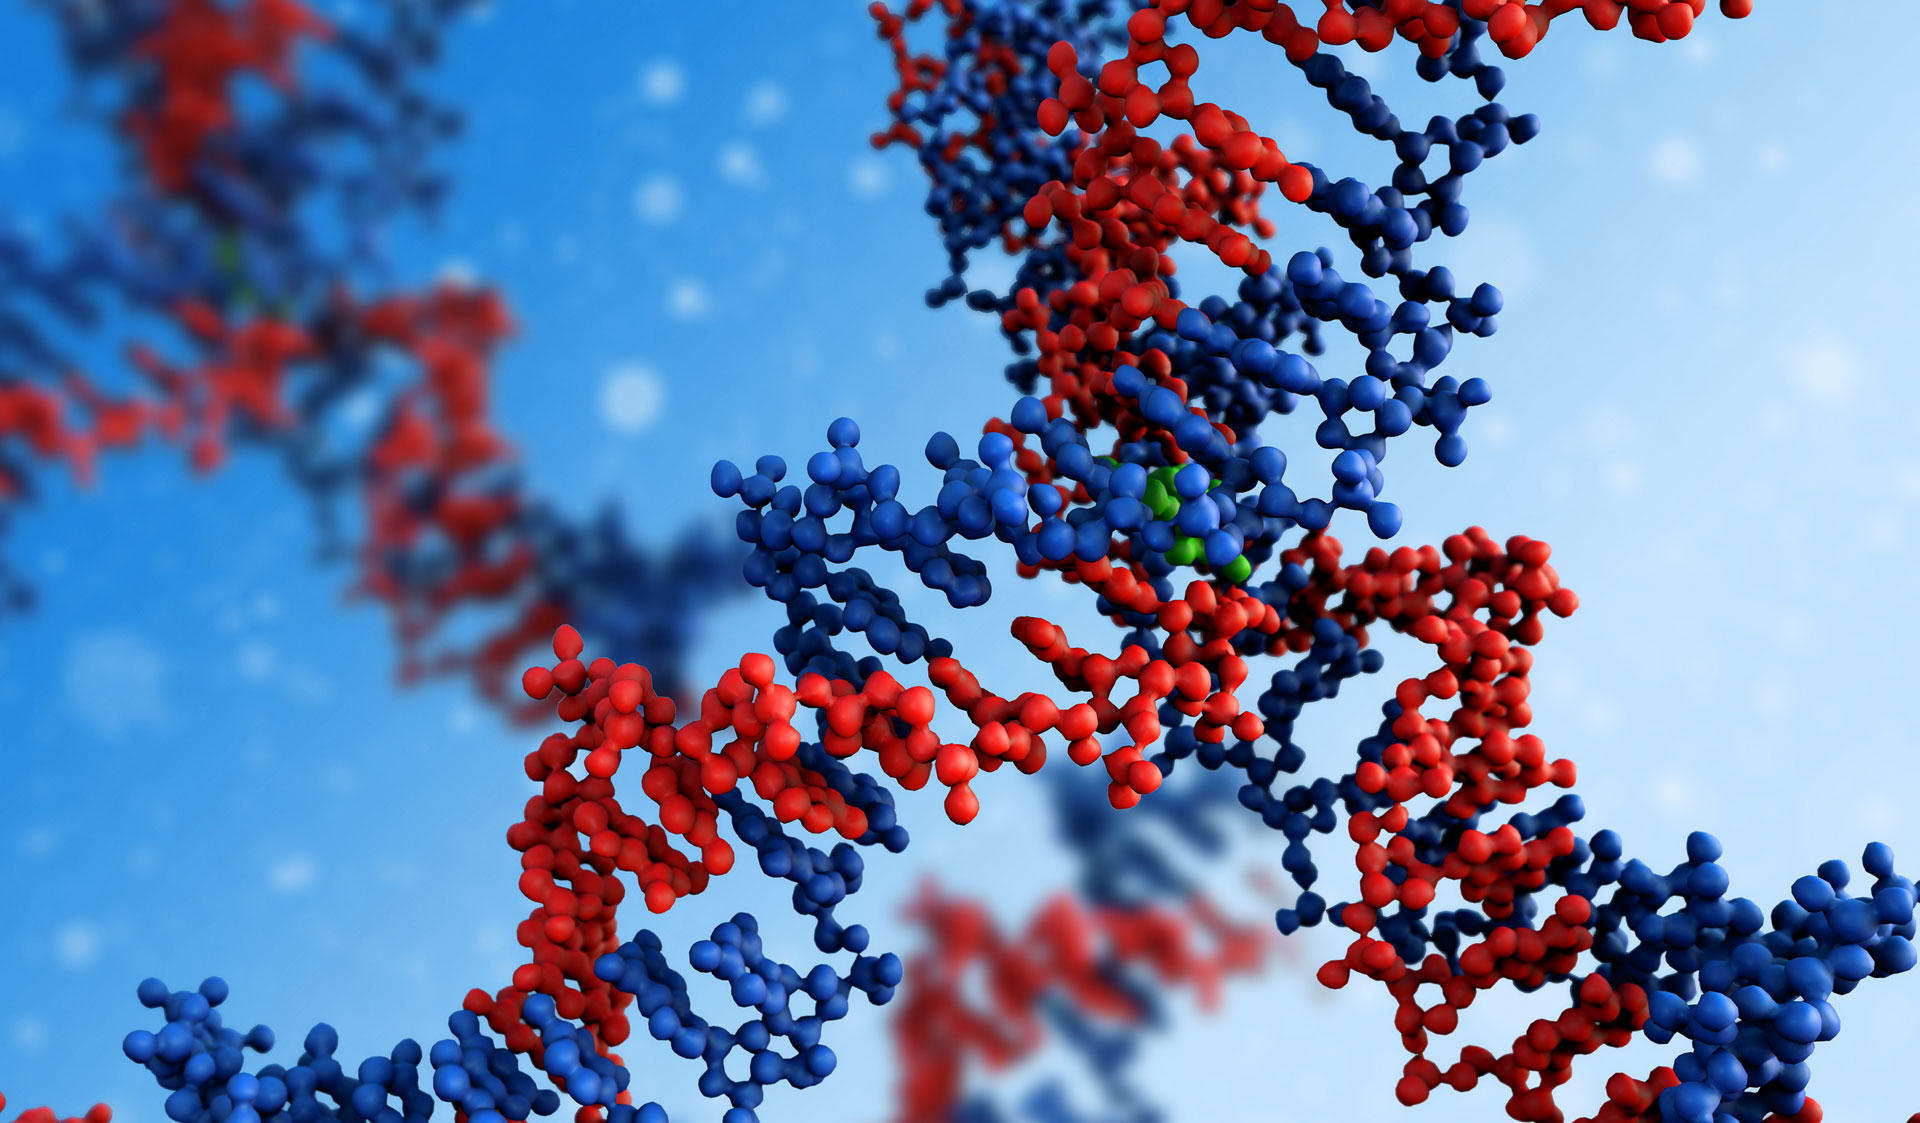 DNA chain in red and blue. Image of the Master's Programme in  Genetics and Molecular Biosciences at the University of Helsinki.